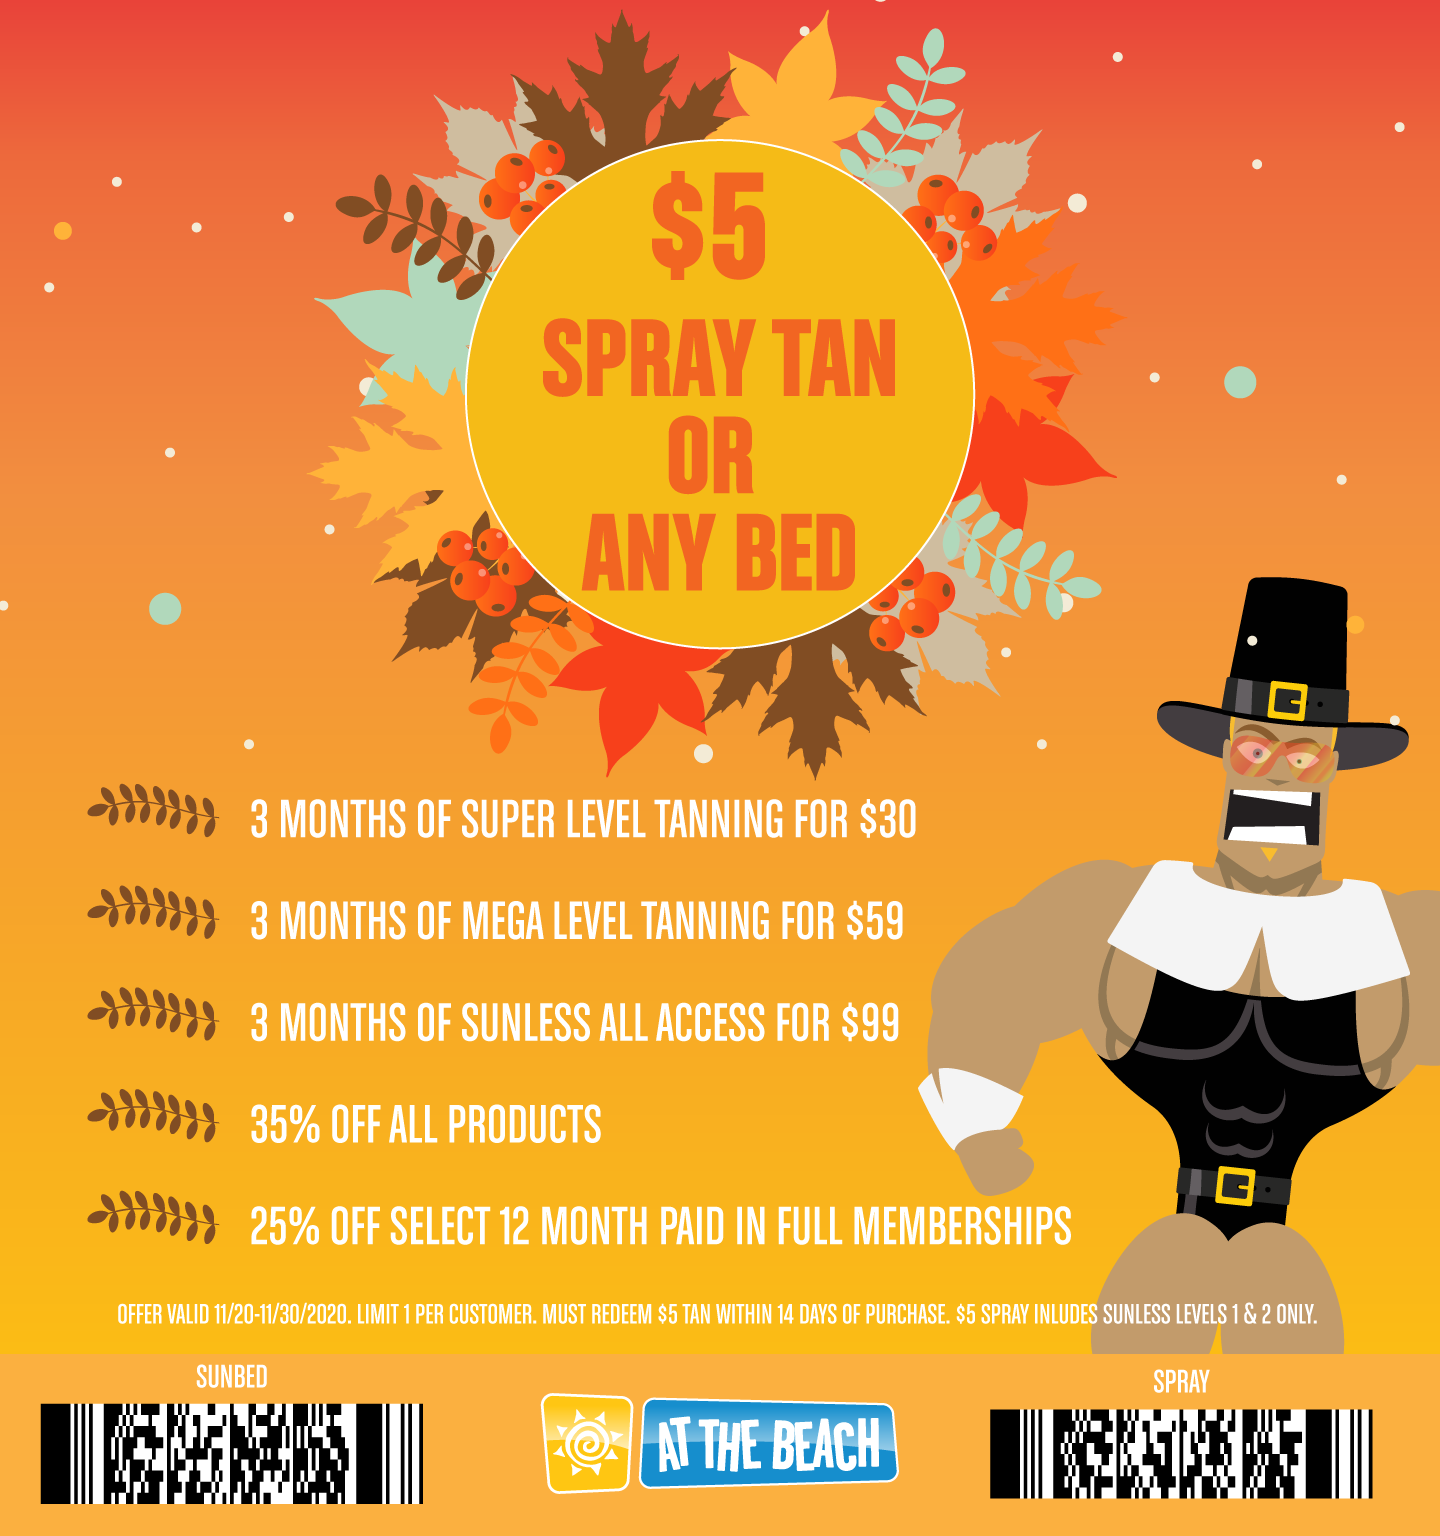 $5 Any Sunbed or Spray and Early Black Friday Specials!